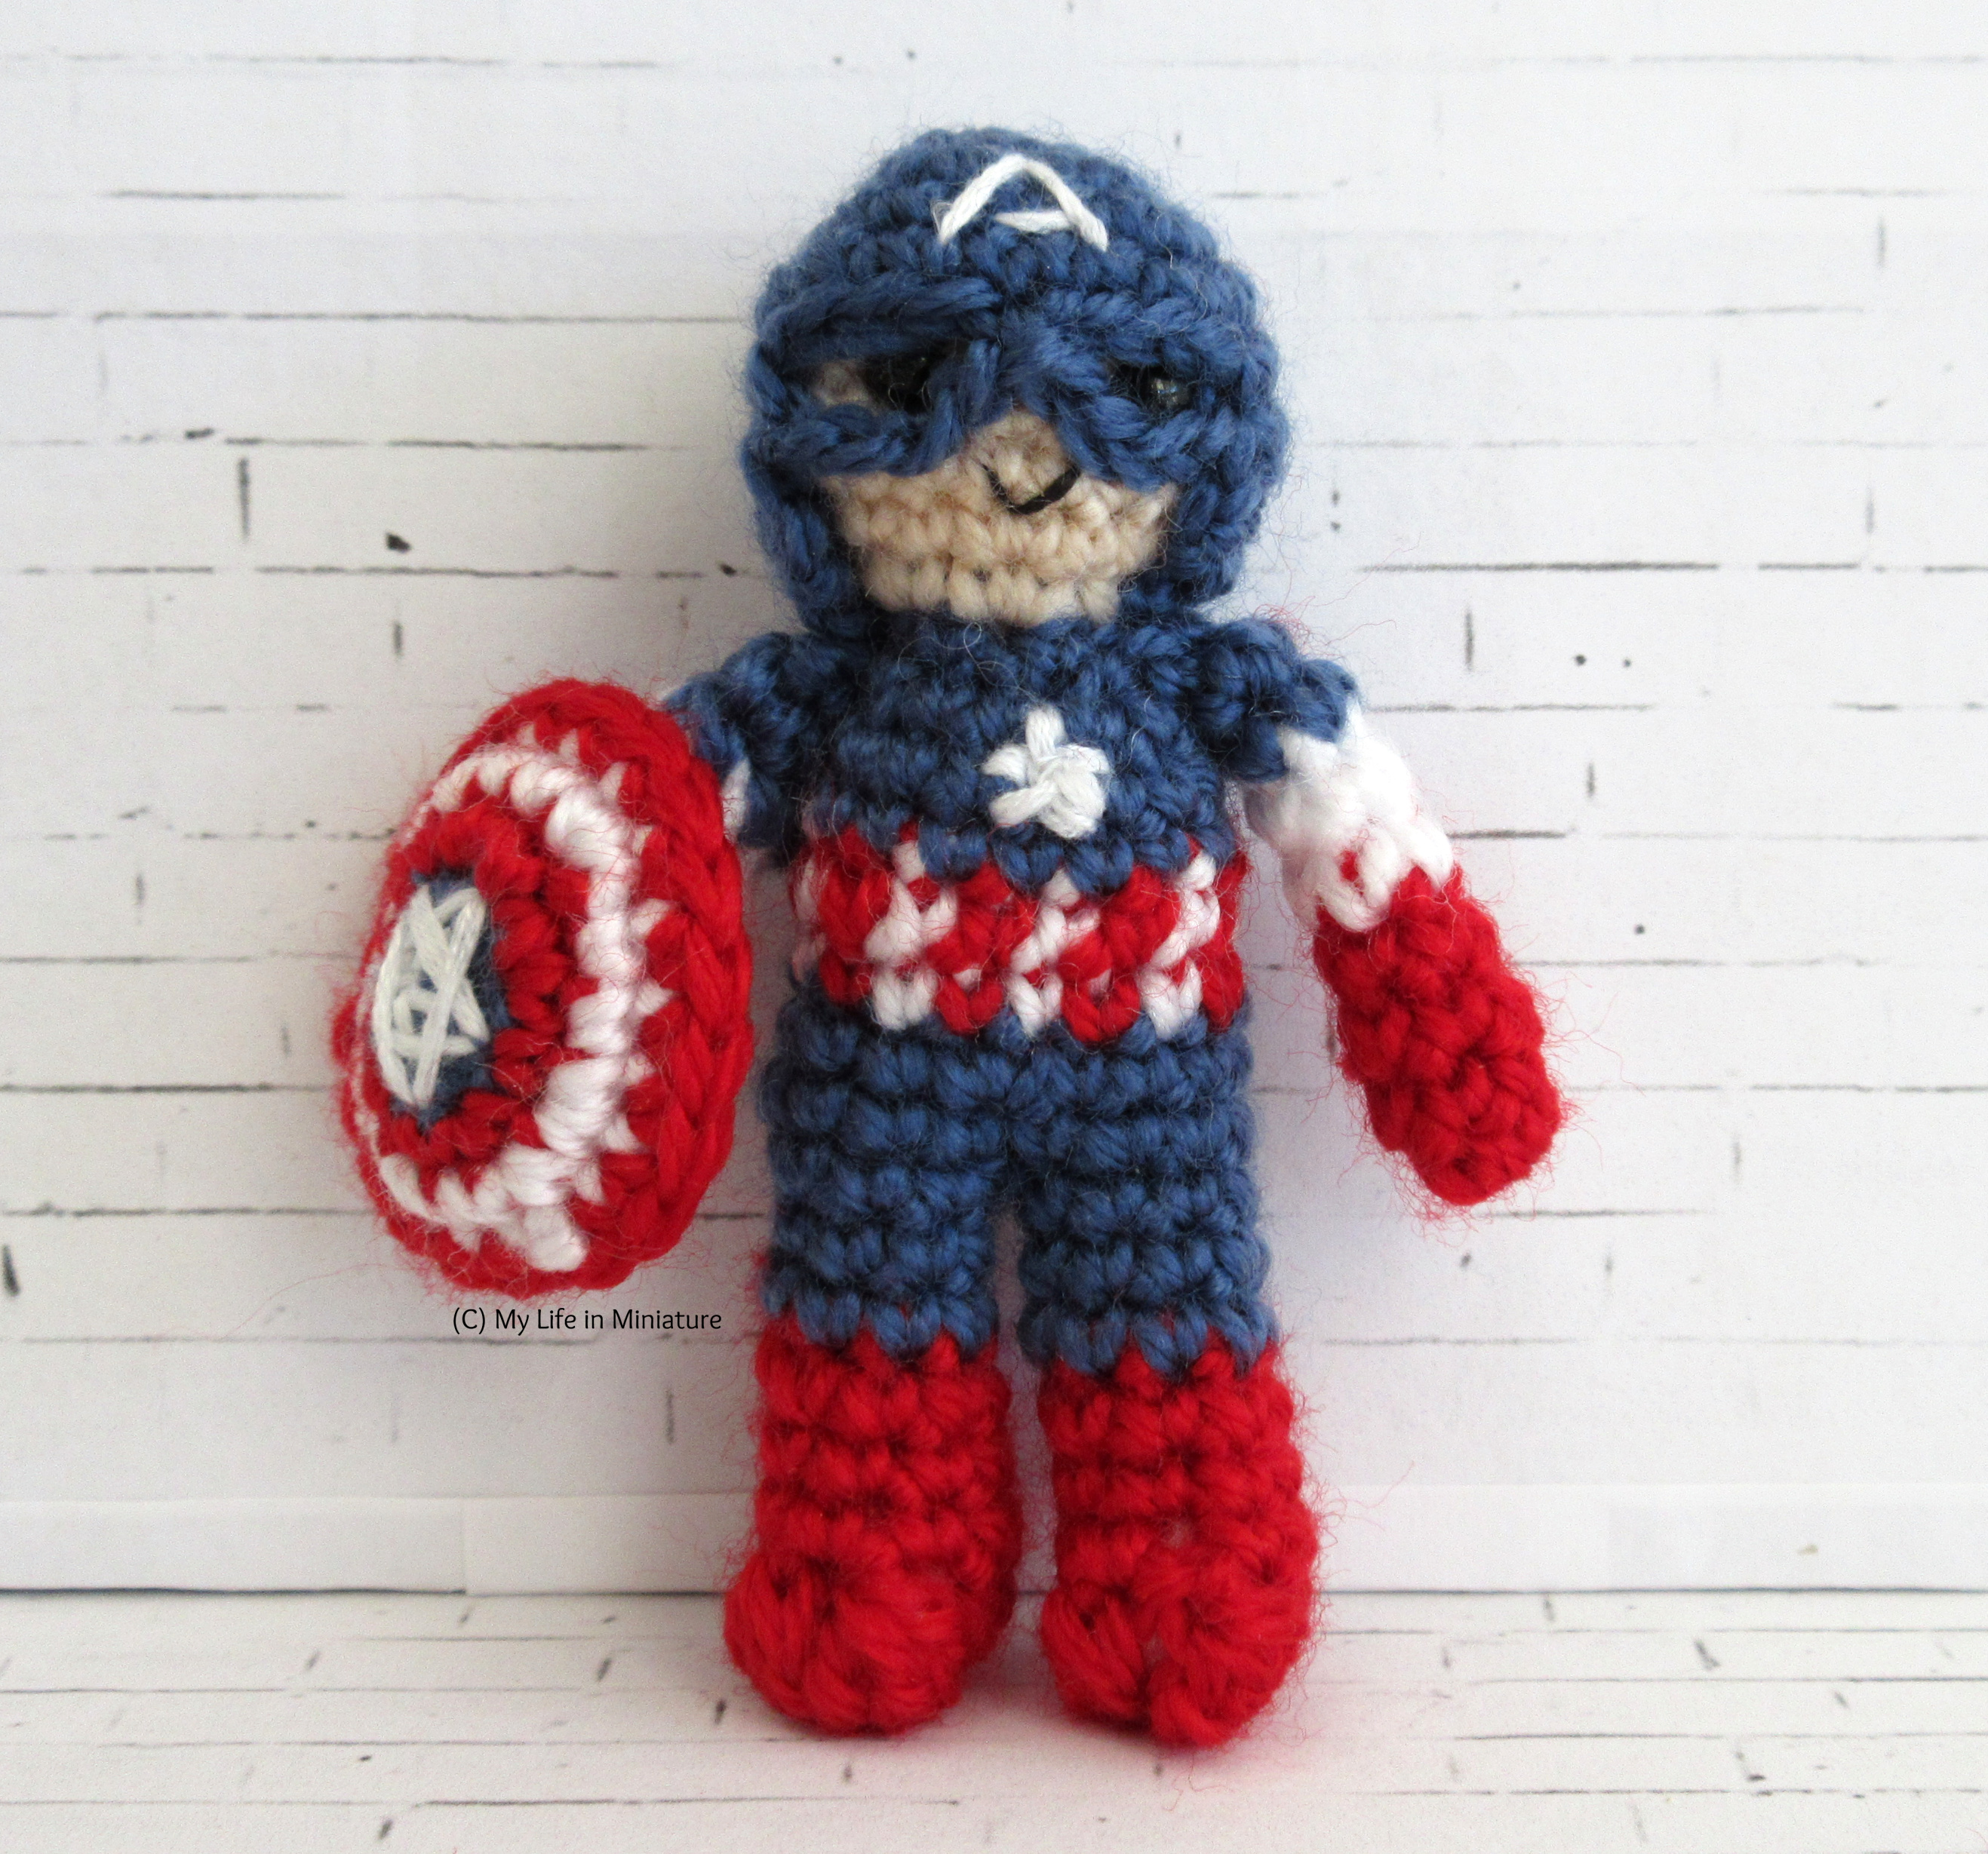 A miniature Captain America crocheted doll stands against a white brick background. He wears the helmet and suit from the first MCU movie, as the last image, and carries the shield in one hand.